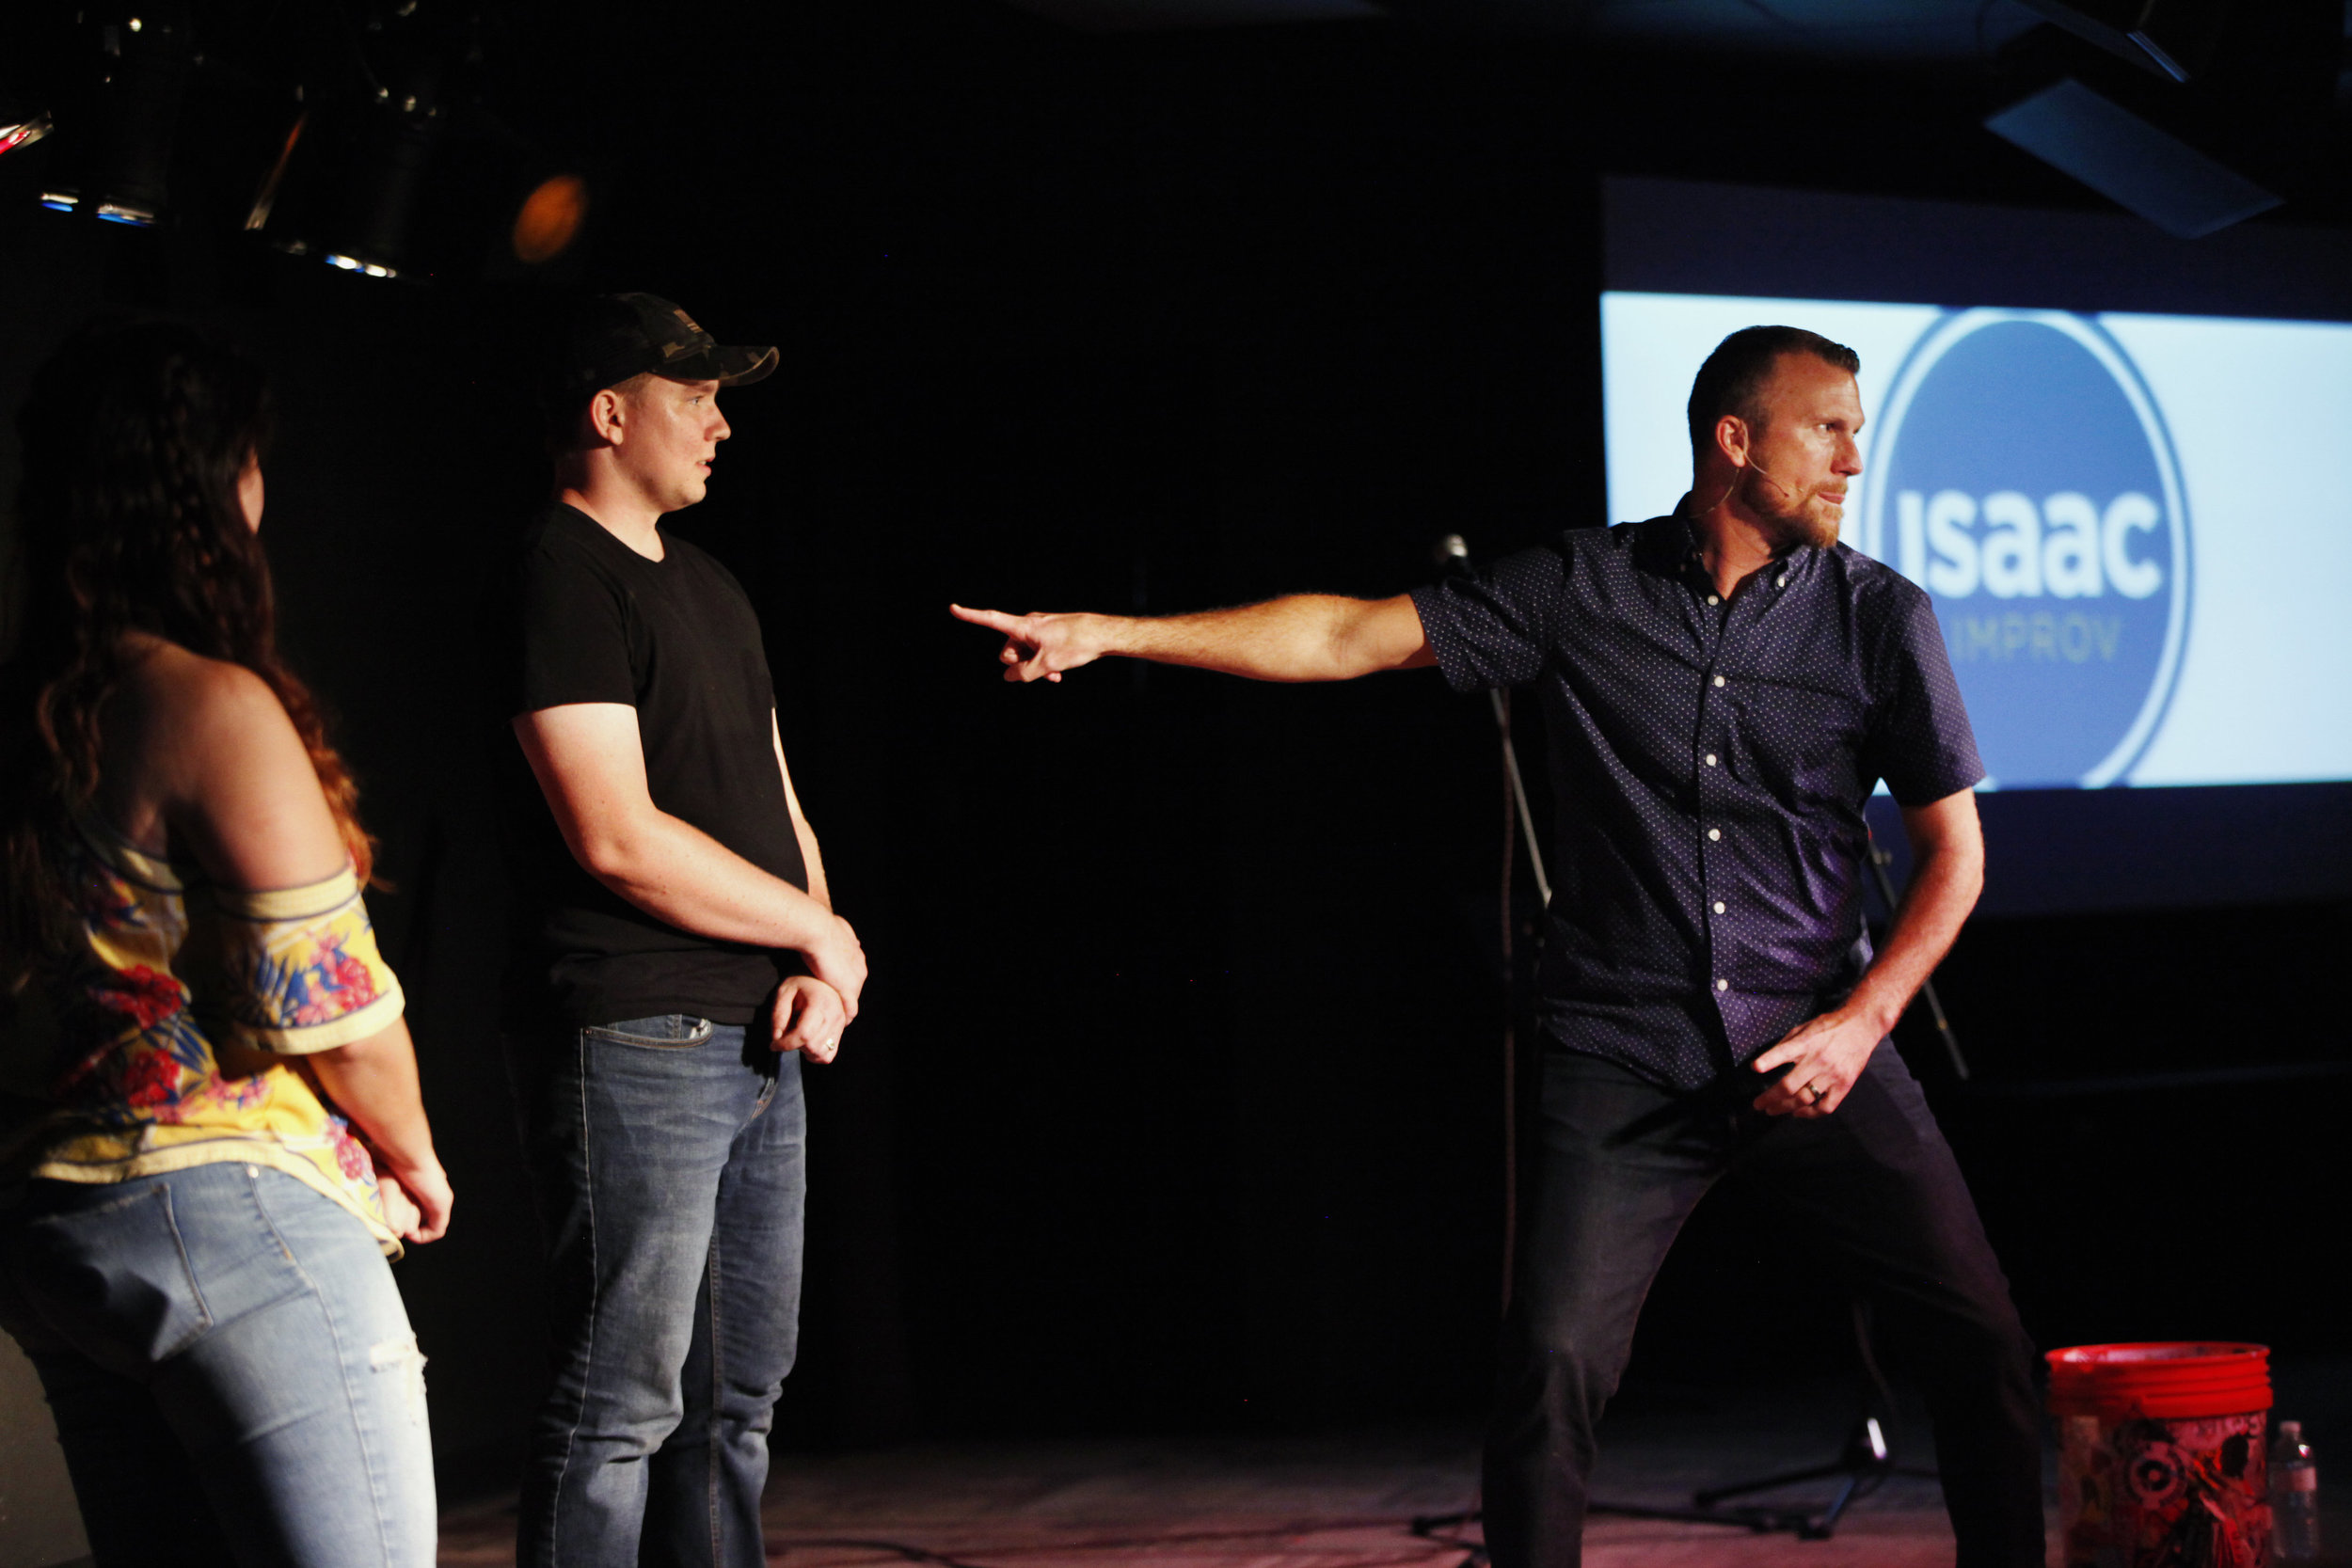 Since 2001 - Isaac Improv has existed to provide quality, clean entertainment for folks that want an added element of comedy to their events. From conferences and camps to banquets and game shows, Isaac Improv has seen it all.